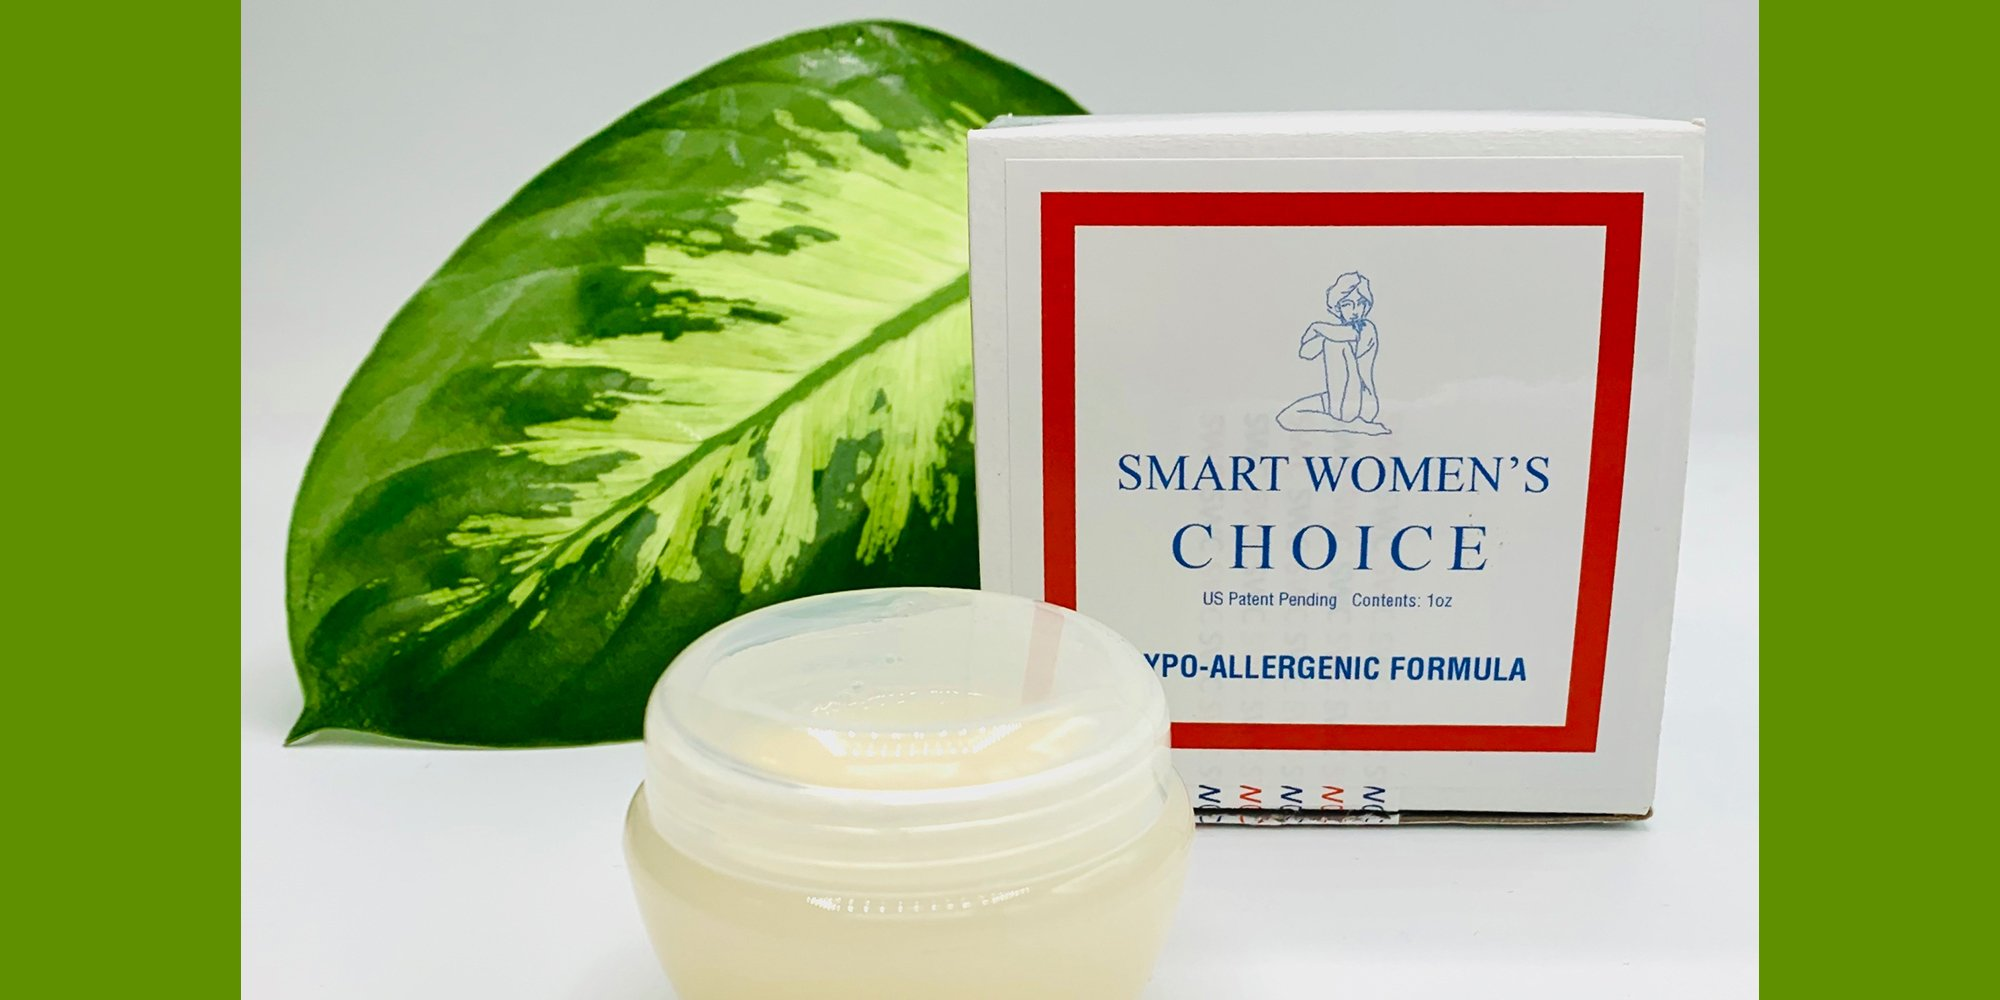 Two OB-GYNs Launch E-Tailer Intimate Wellness Shop With A Diverse Array Of Women's Health And Sexual Pleasure Products